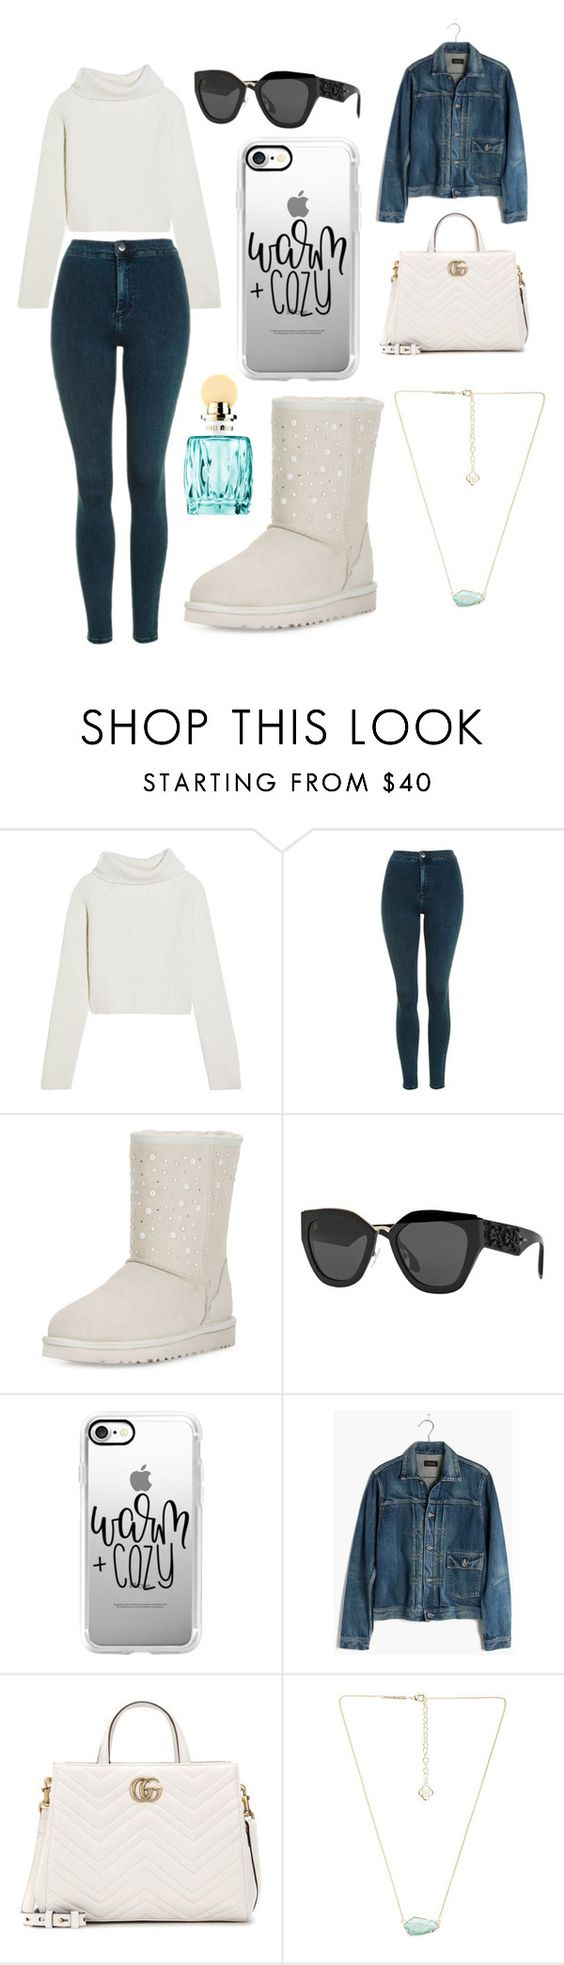 """Sans titre #3349"" by merveille67120 ❤ liked on Polyvore featuring Haider Ackermann, Topshop, UGG, Prada, Casetify, Madewell, Gucci, Kendra Scott and Miu Miu"